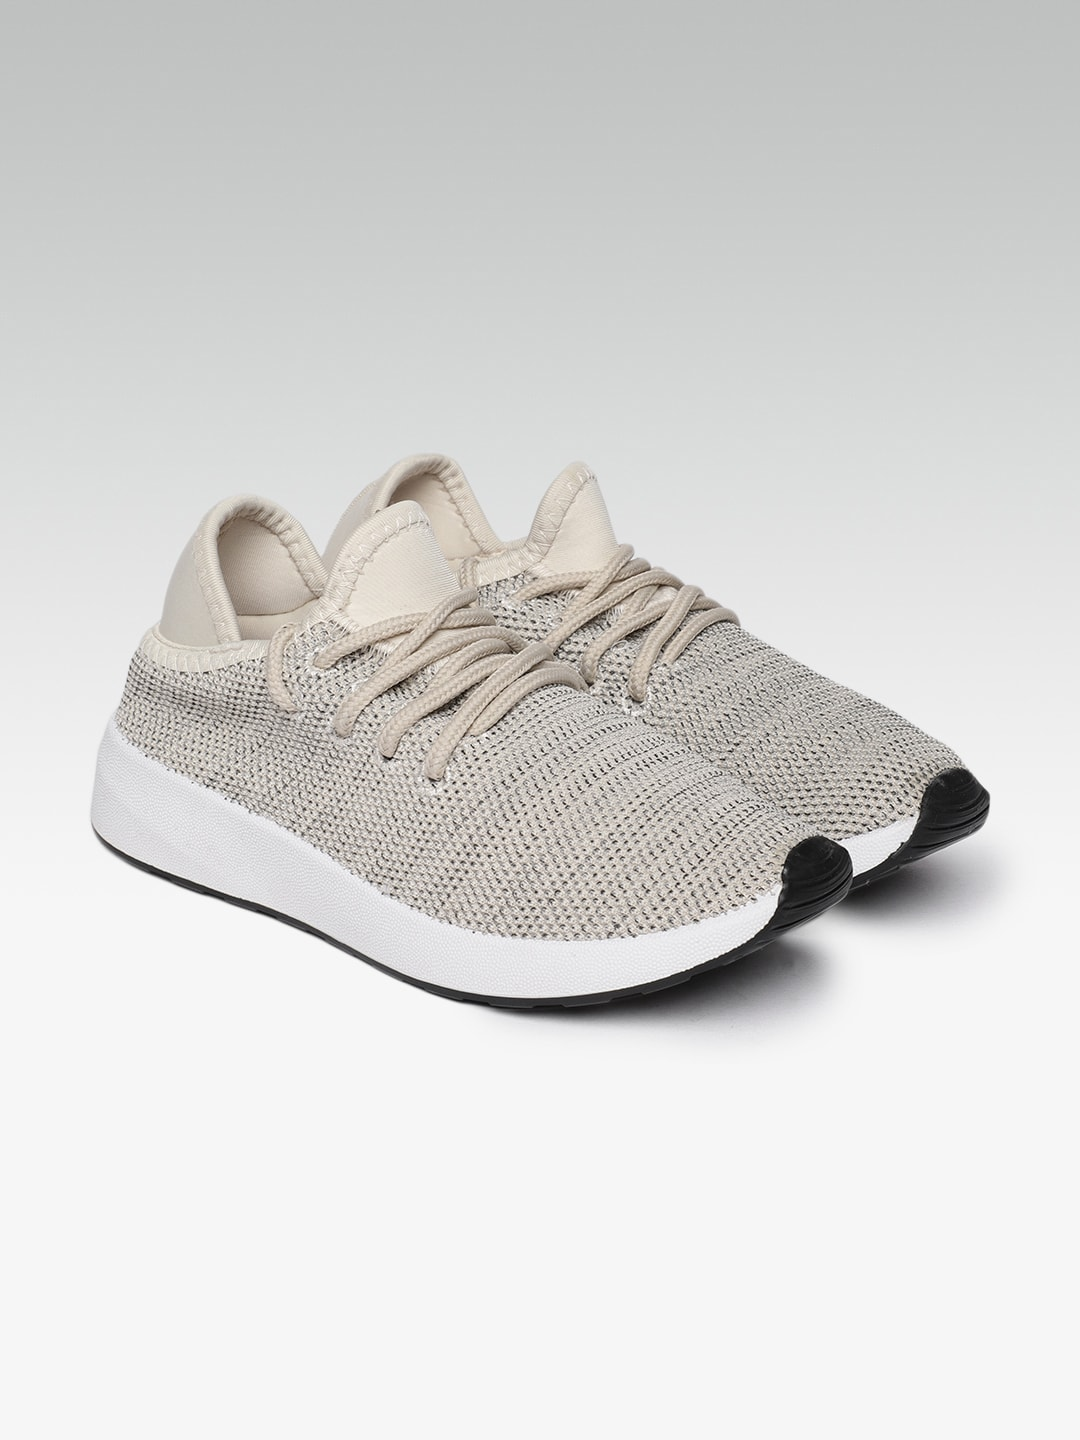 6e946639f4d Steve Madden Sneakers Casual Shoes - Buy Steve Madden Sneakers Casual Shoes  online in India